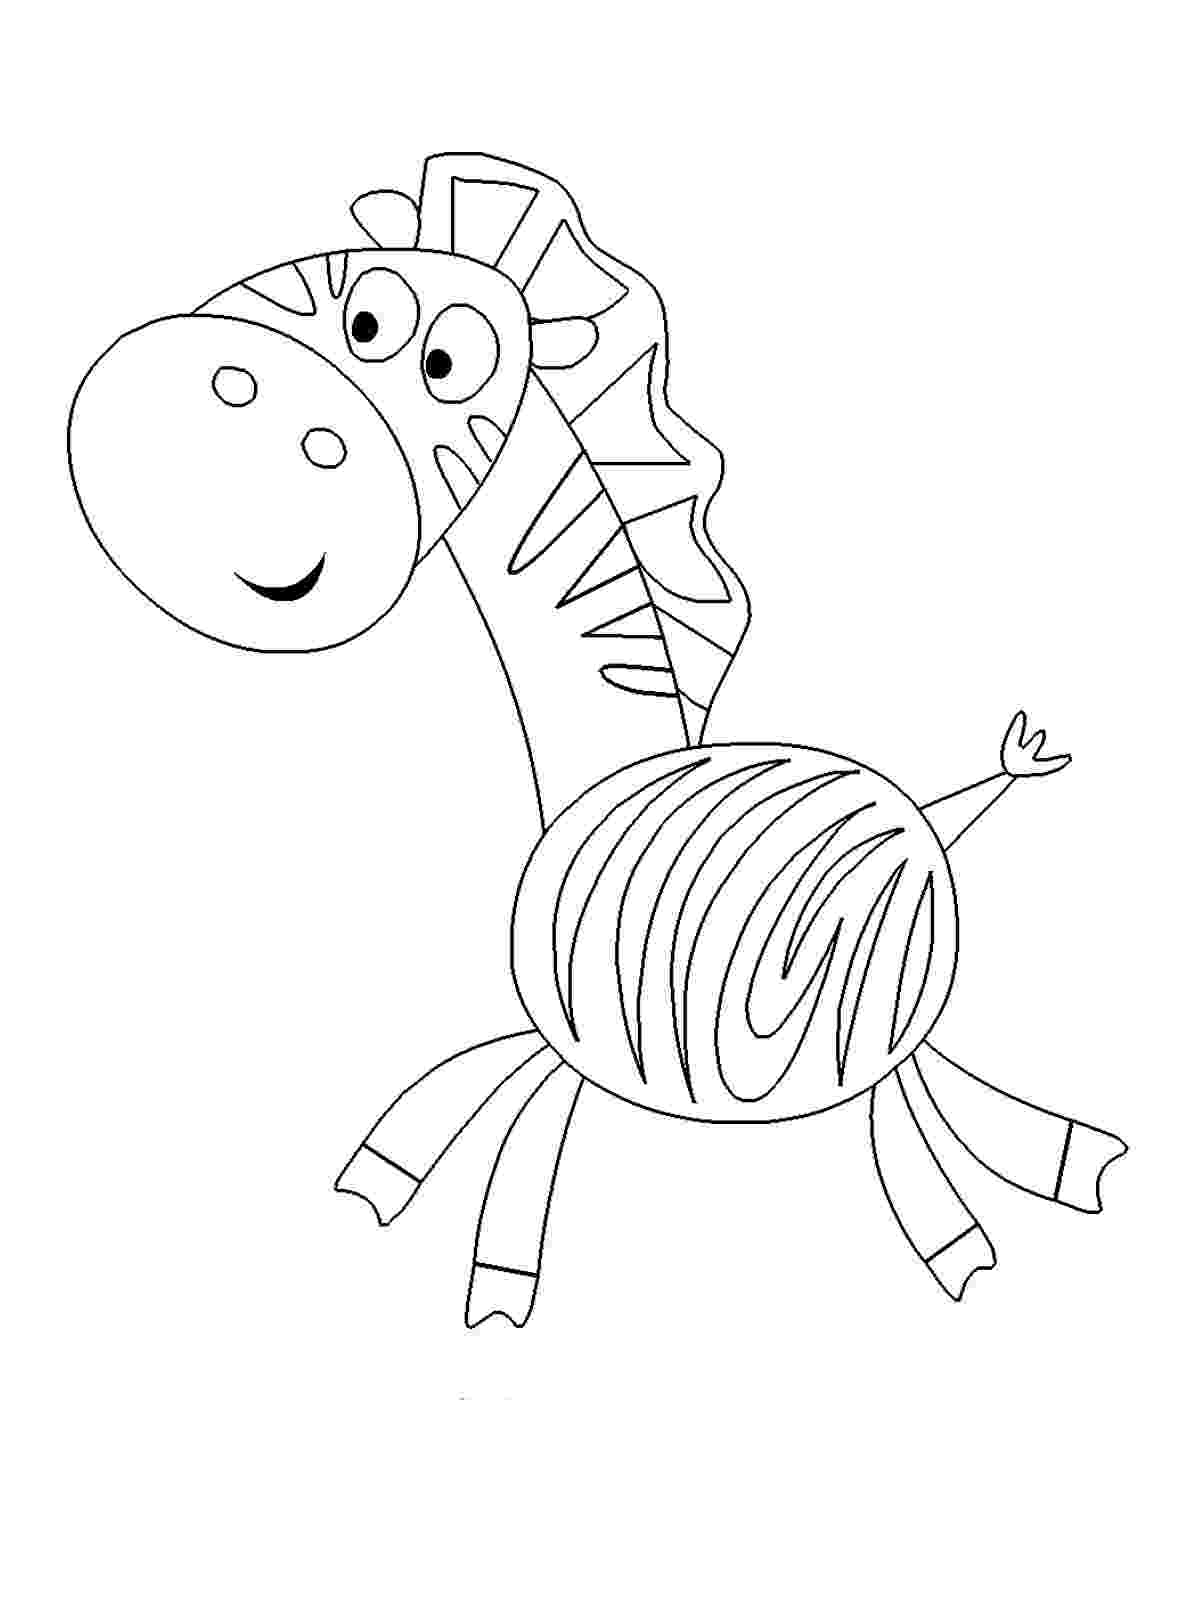 colouring book pages to print free printable tangled coloring pages for kids cool2bkids pages print to book colouring